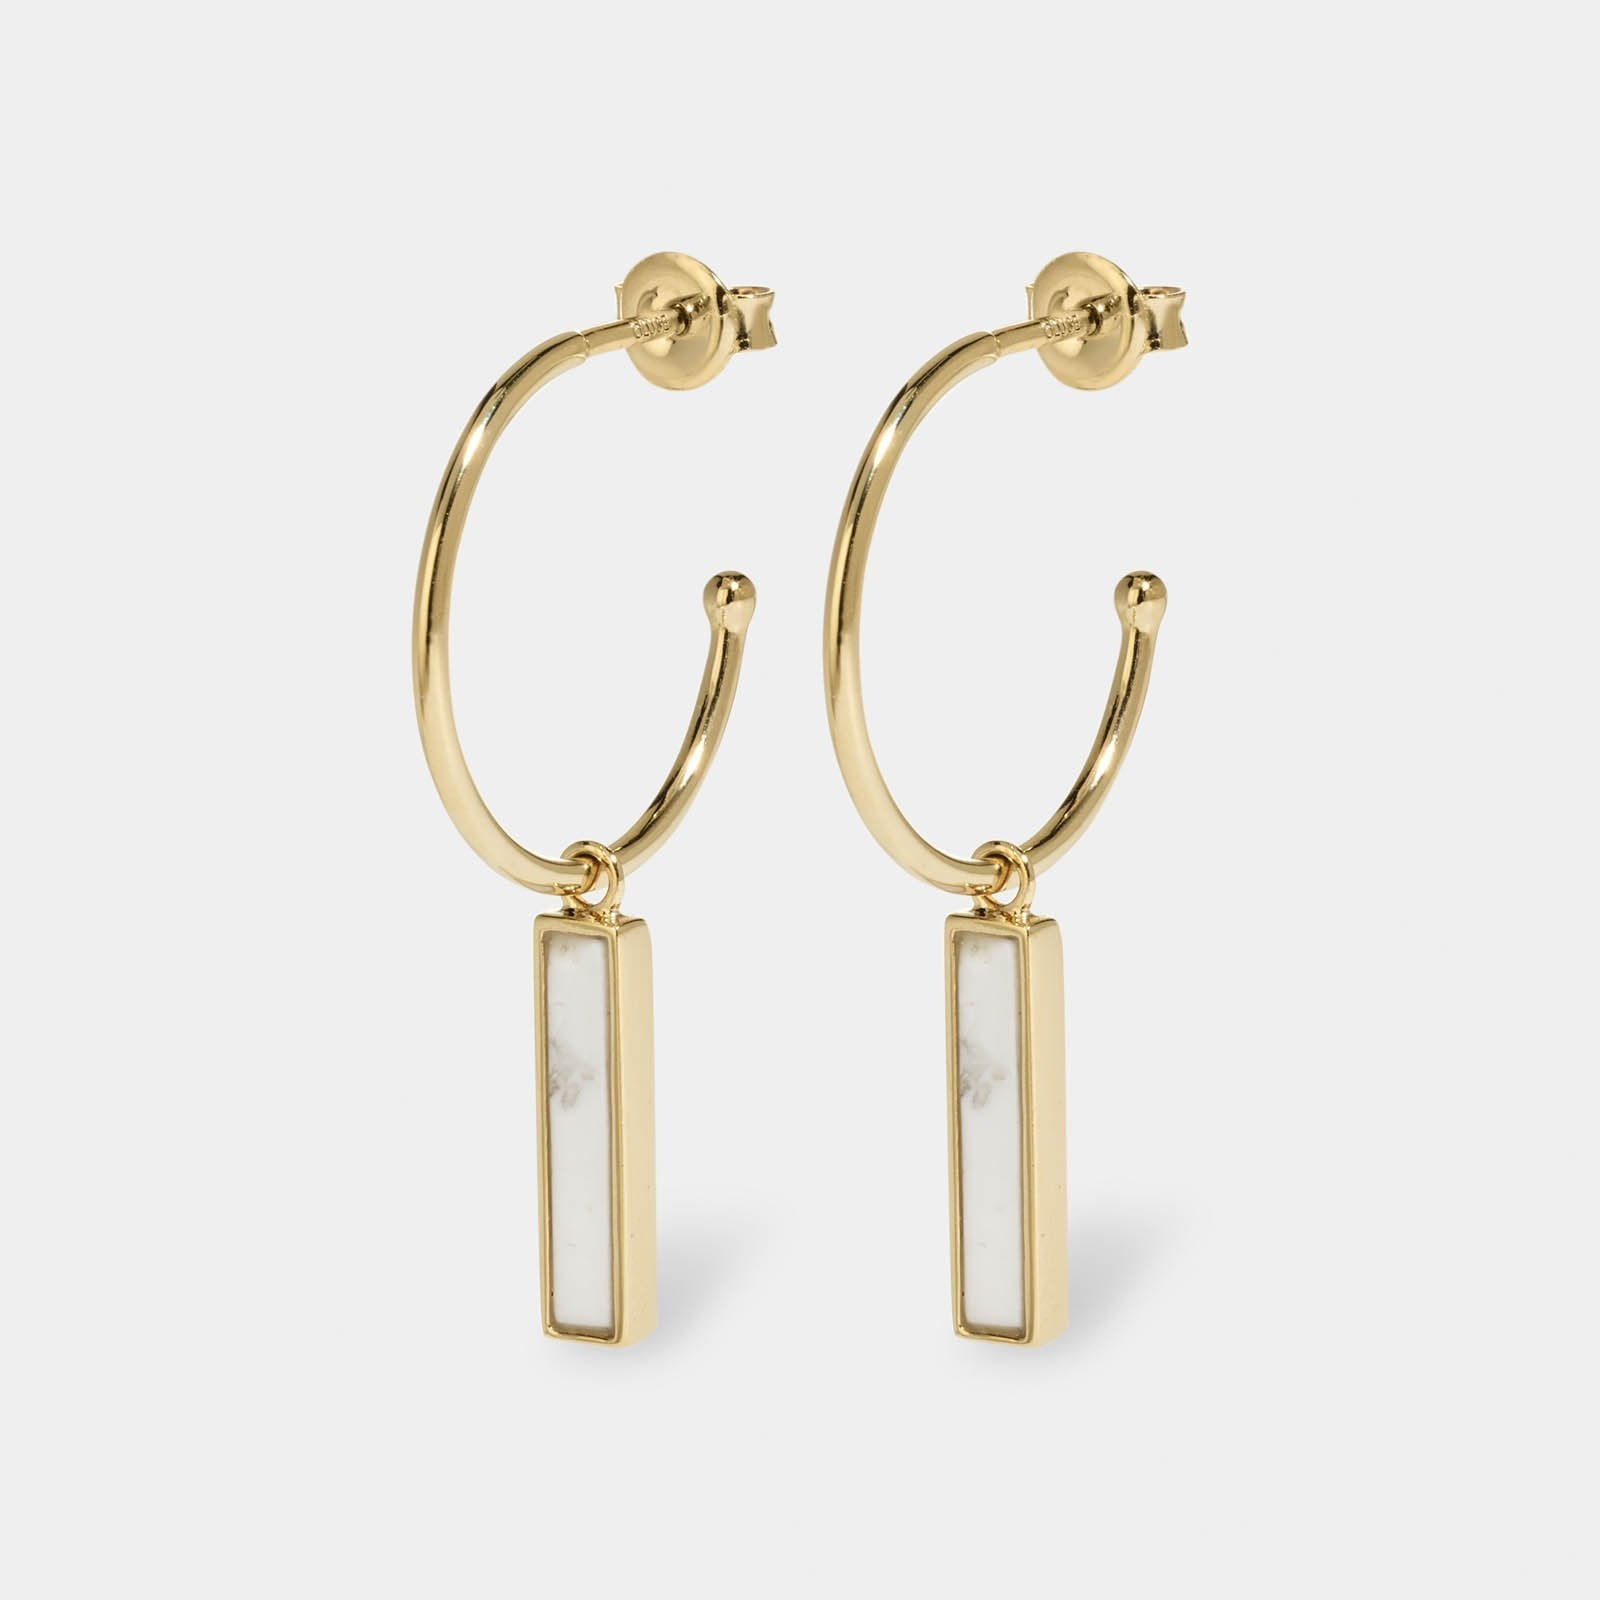 CLUSE Idylle Gold Marble Bar Hoop Earrings CLJ51001 - Boucles d'oreilles